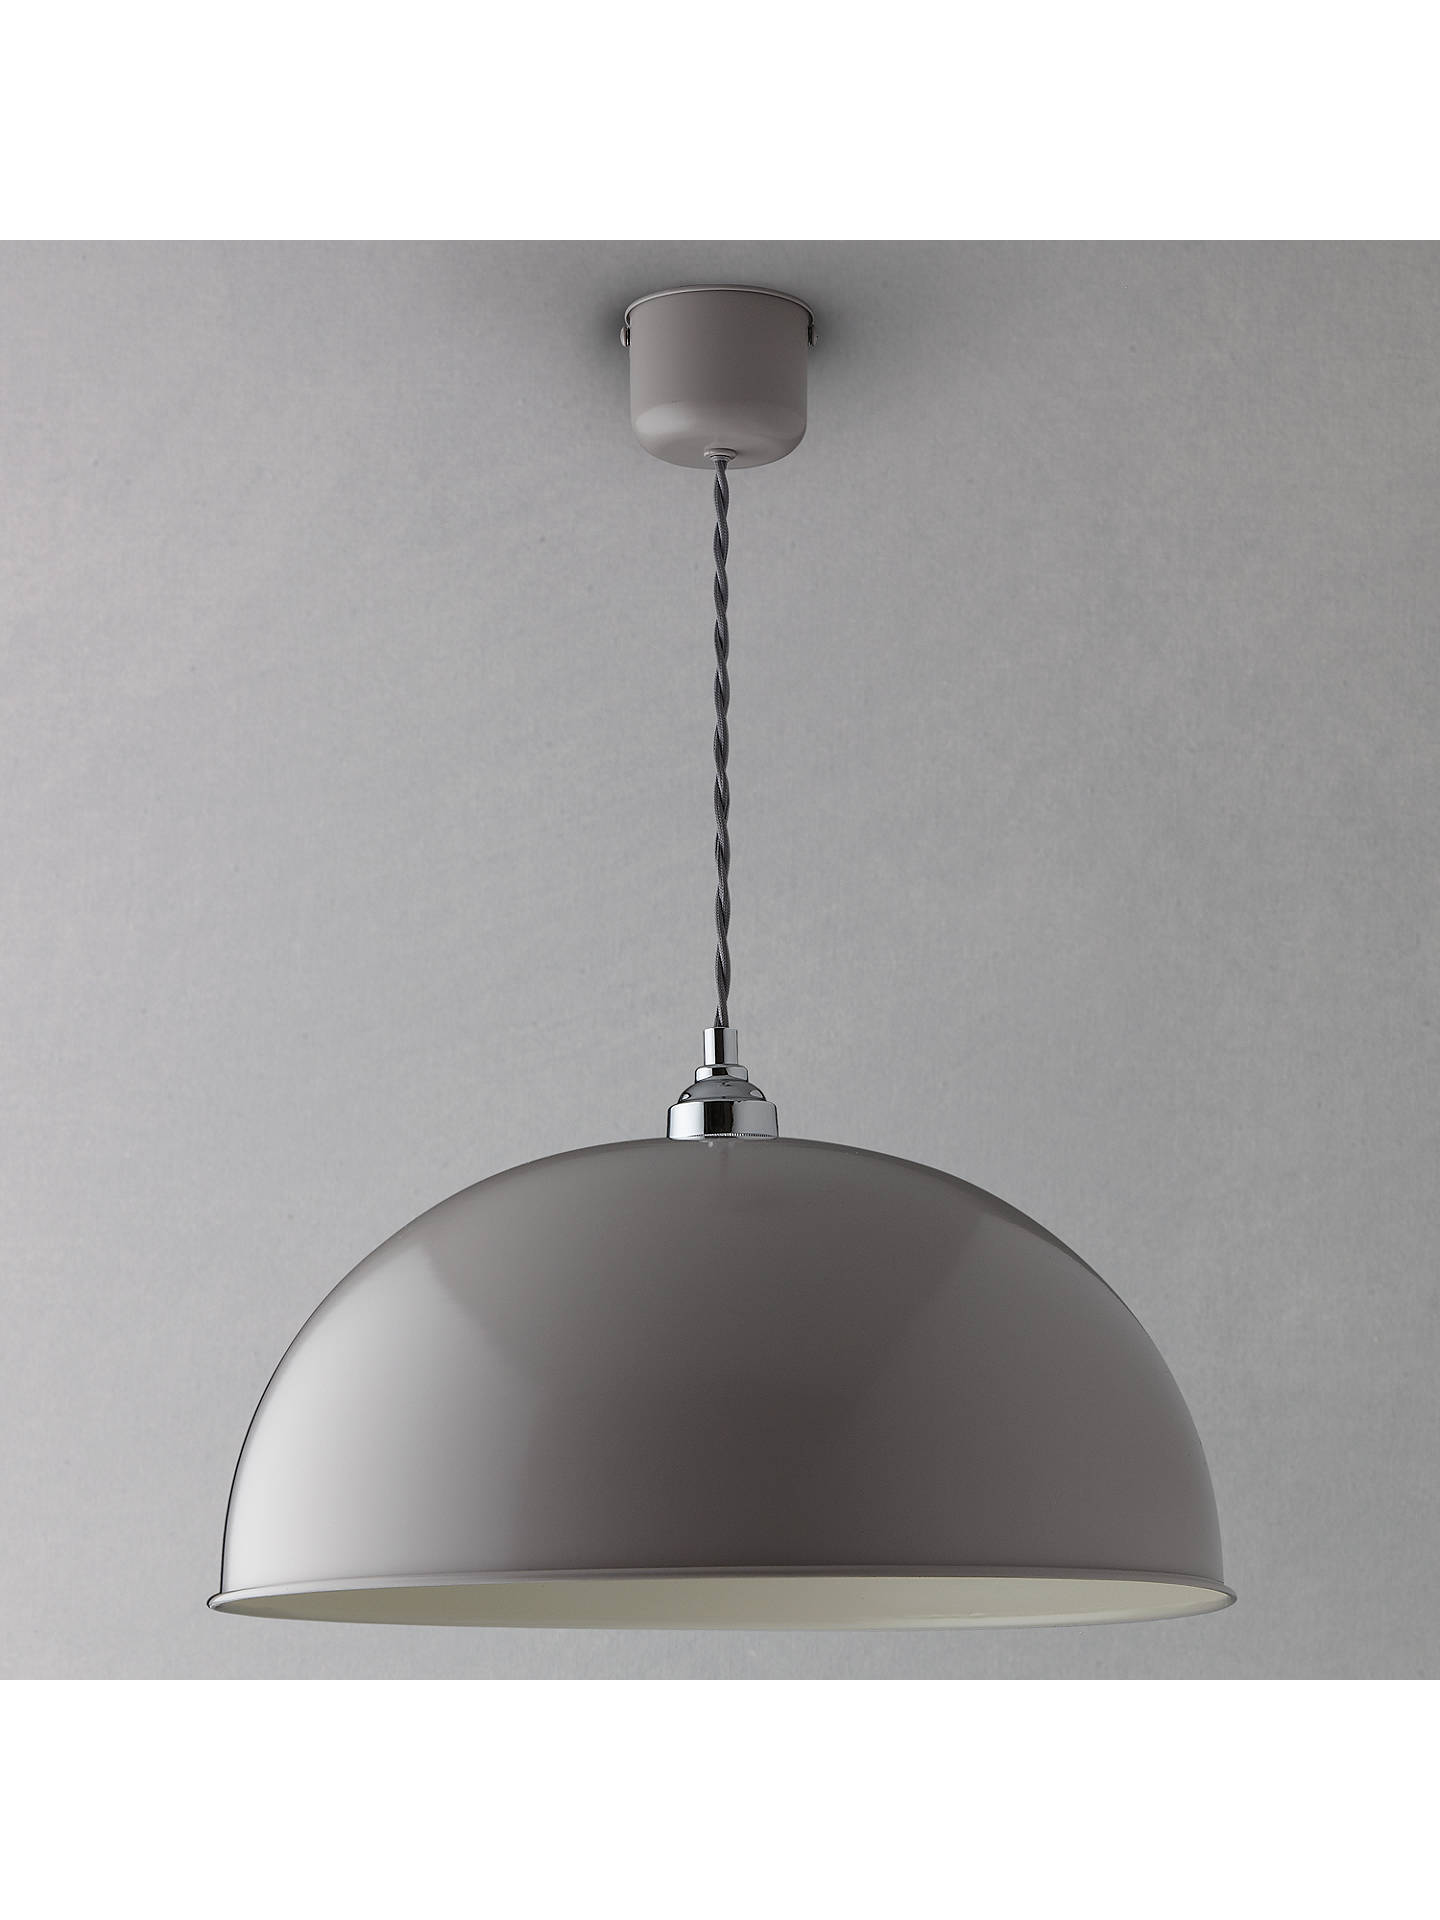 Buy John Lewis & Partners Plymouth Ceiling Pendant Online at johnlewis.com